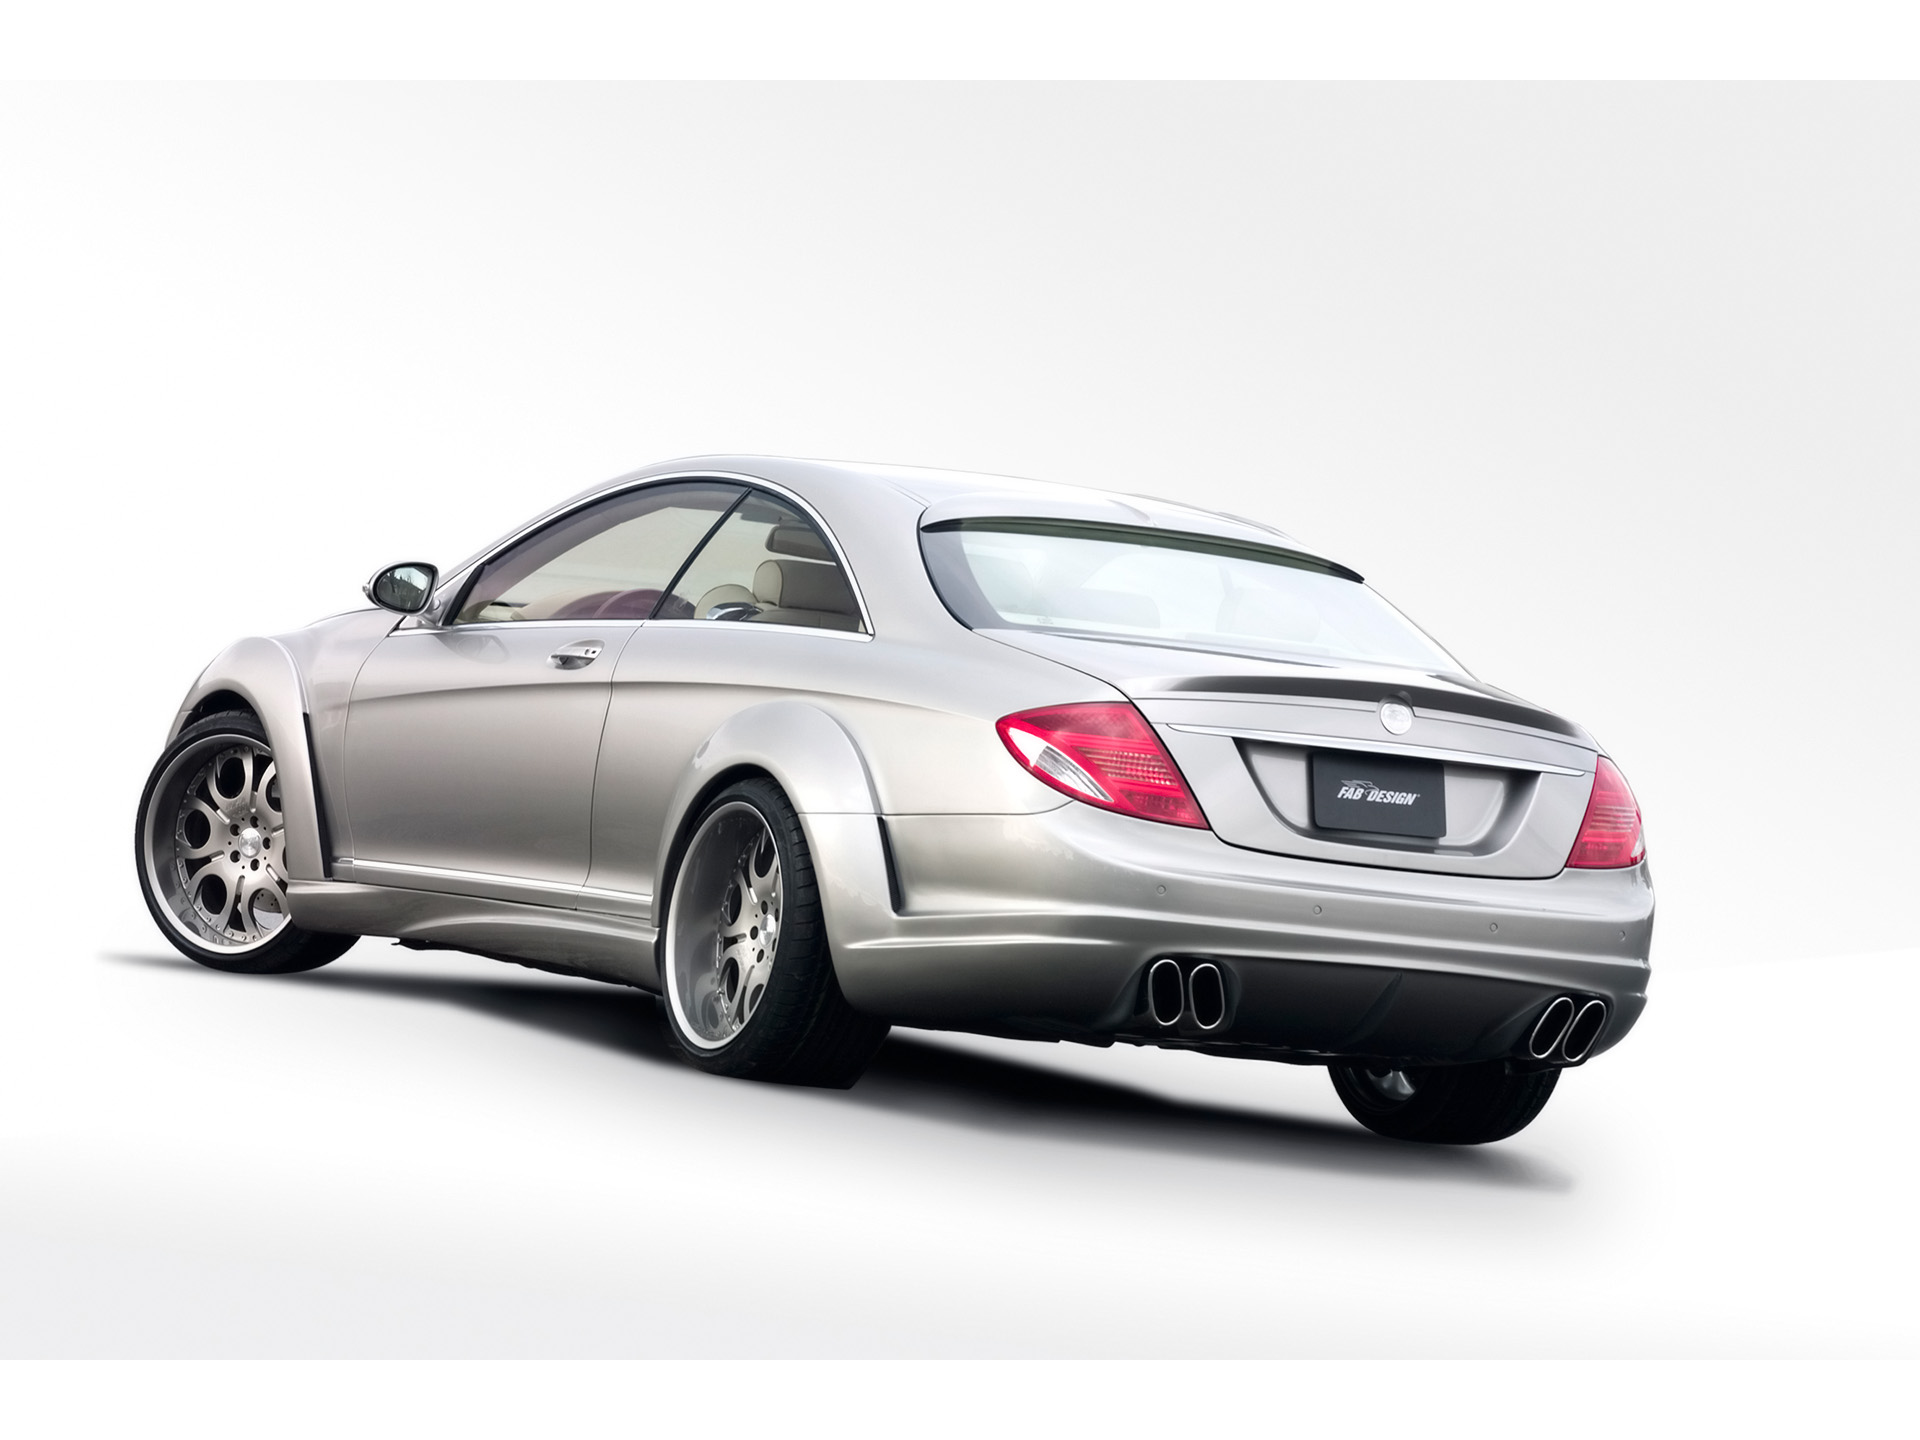 fab design mercedes cl600 v12 biturbo photos photogallery with 5 pics. Black Bedroom Furniture Sets. Home Design Ideas